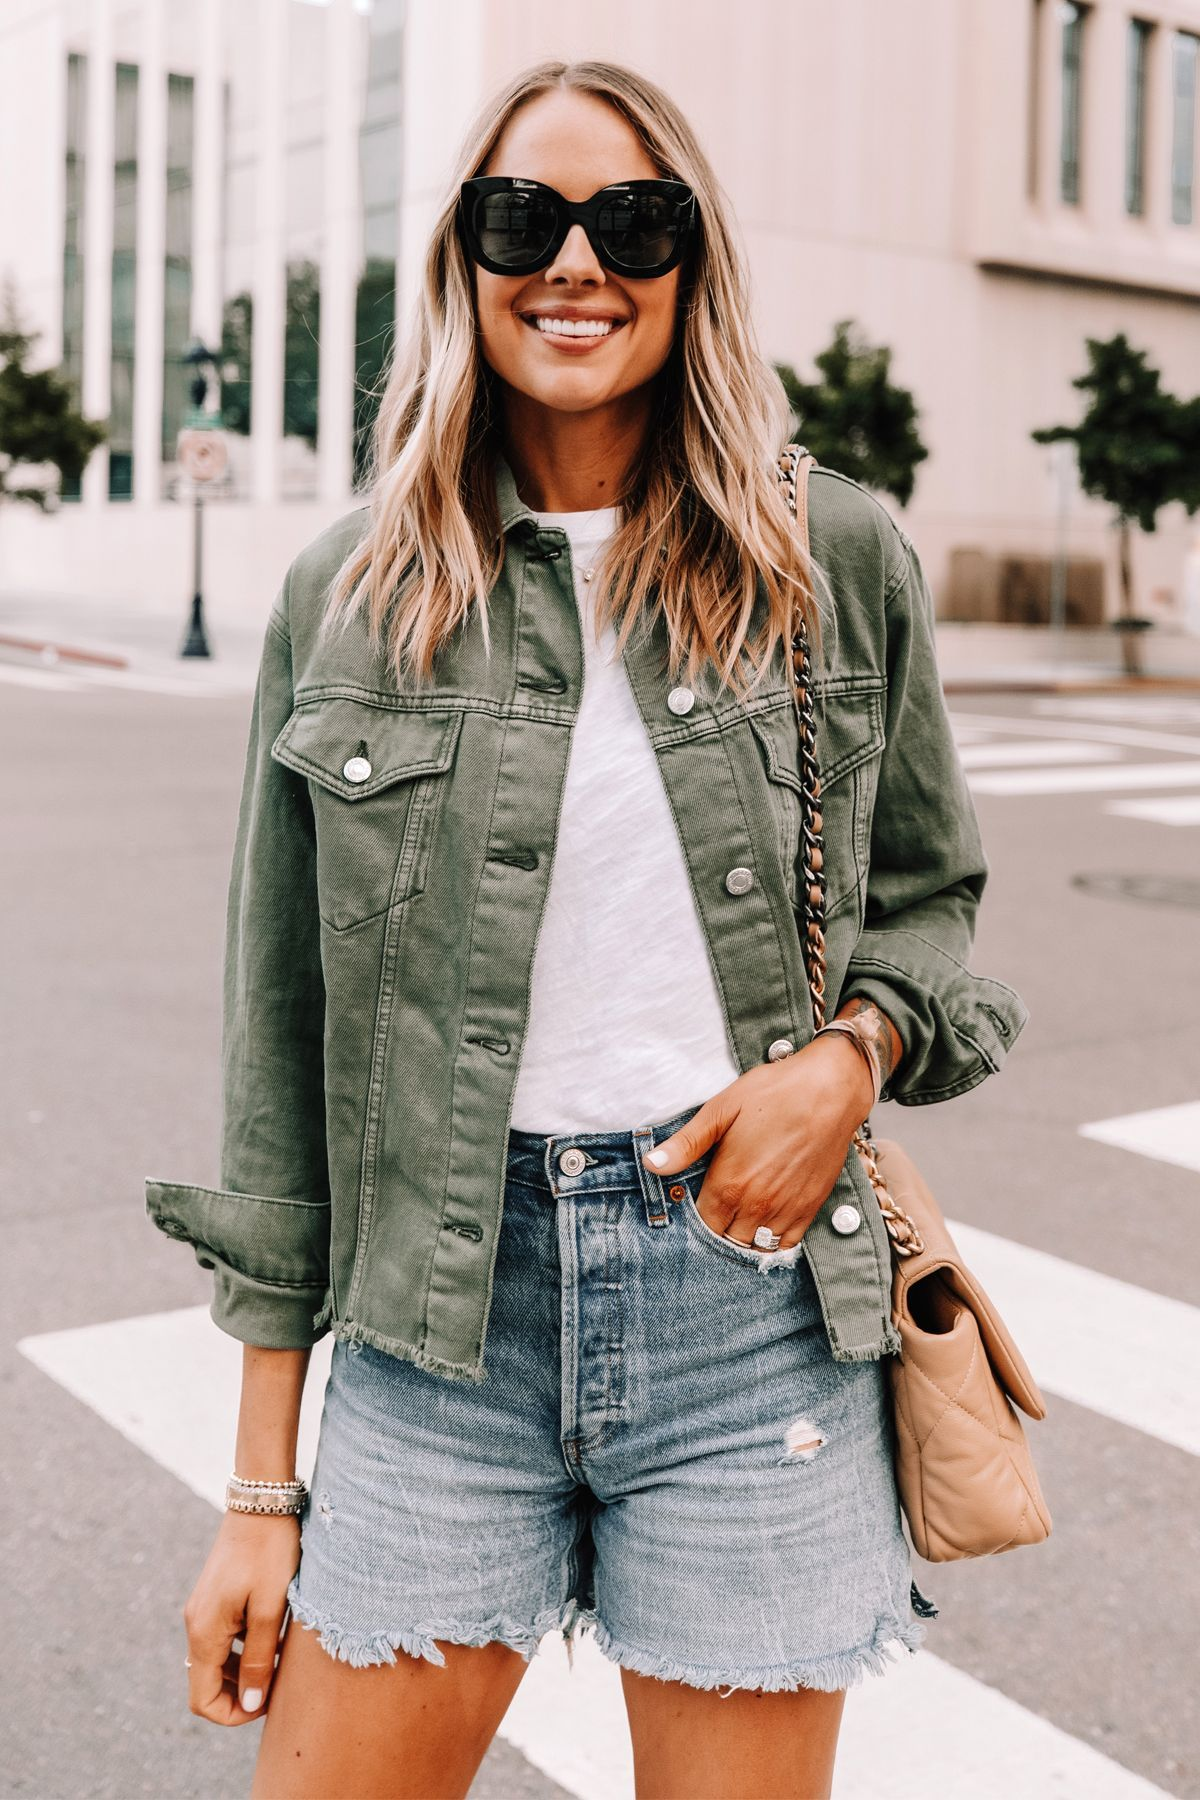 Golden Goose S New Private Edition Super Star Sneakers Fashion Jackson Green Denim Jacket Women Green Denim Jacket Denim Jacket Outfit [ 1800 x 1200 Pixel ]